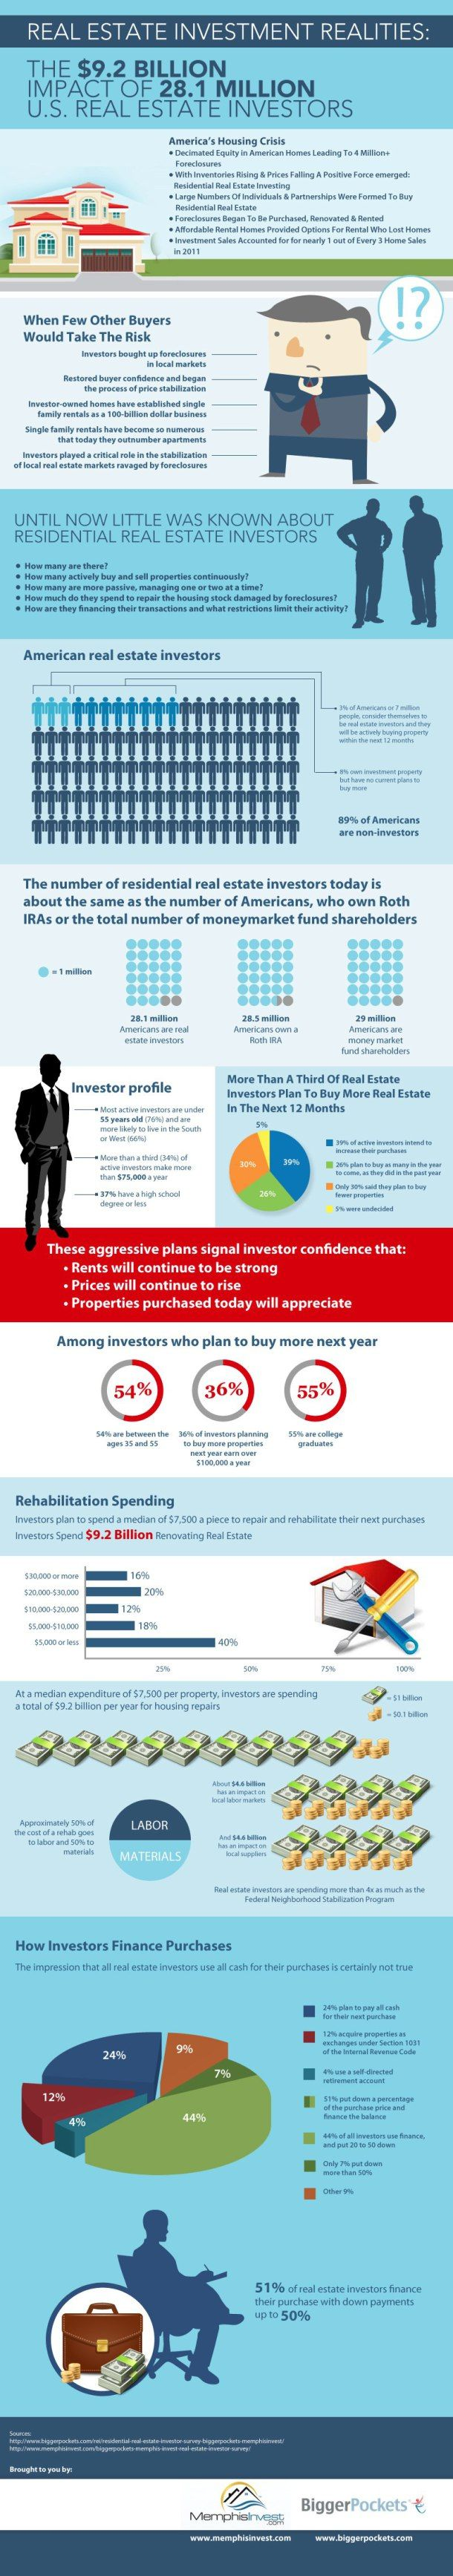 Real Estate Investment Realities: The 9.2 Billion Impact Of 281. Million U.S. Real Estate Investors [INFOGRAPHIC] – Infographic List